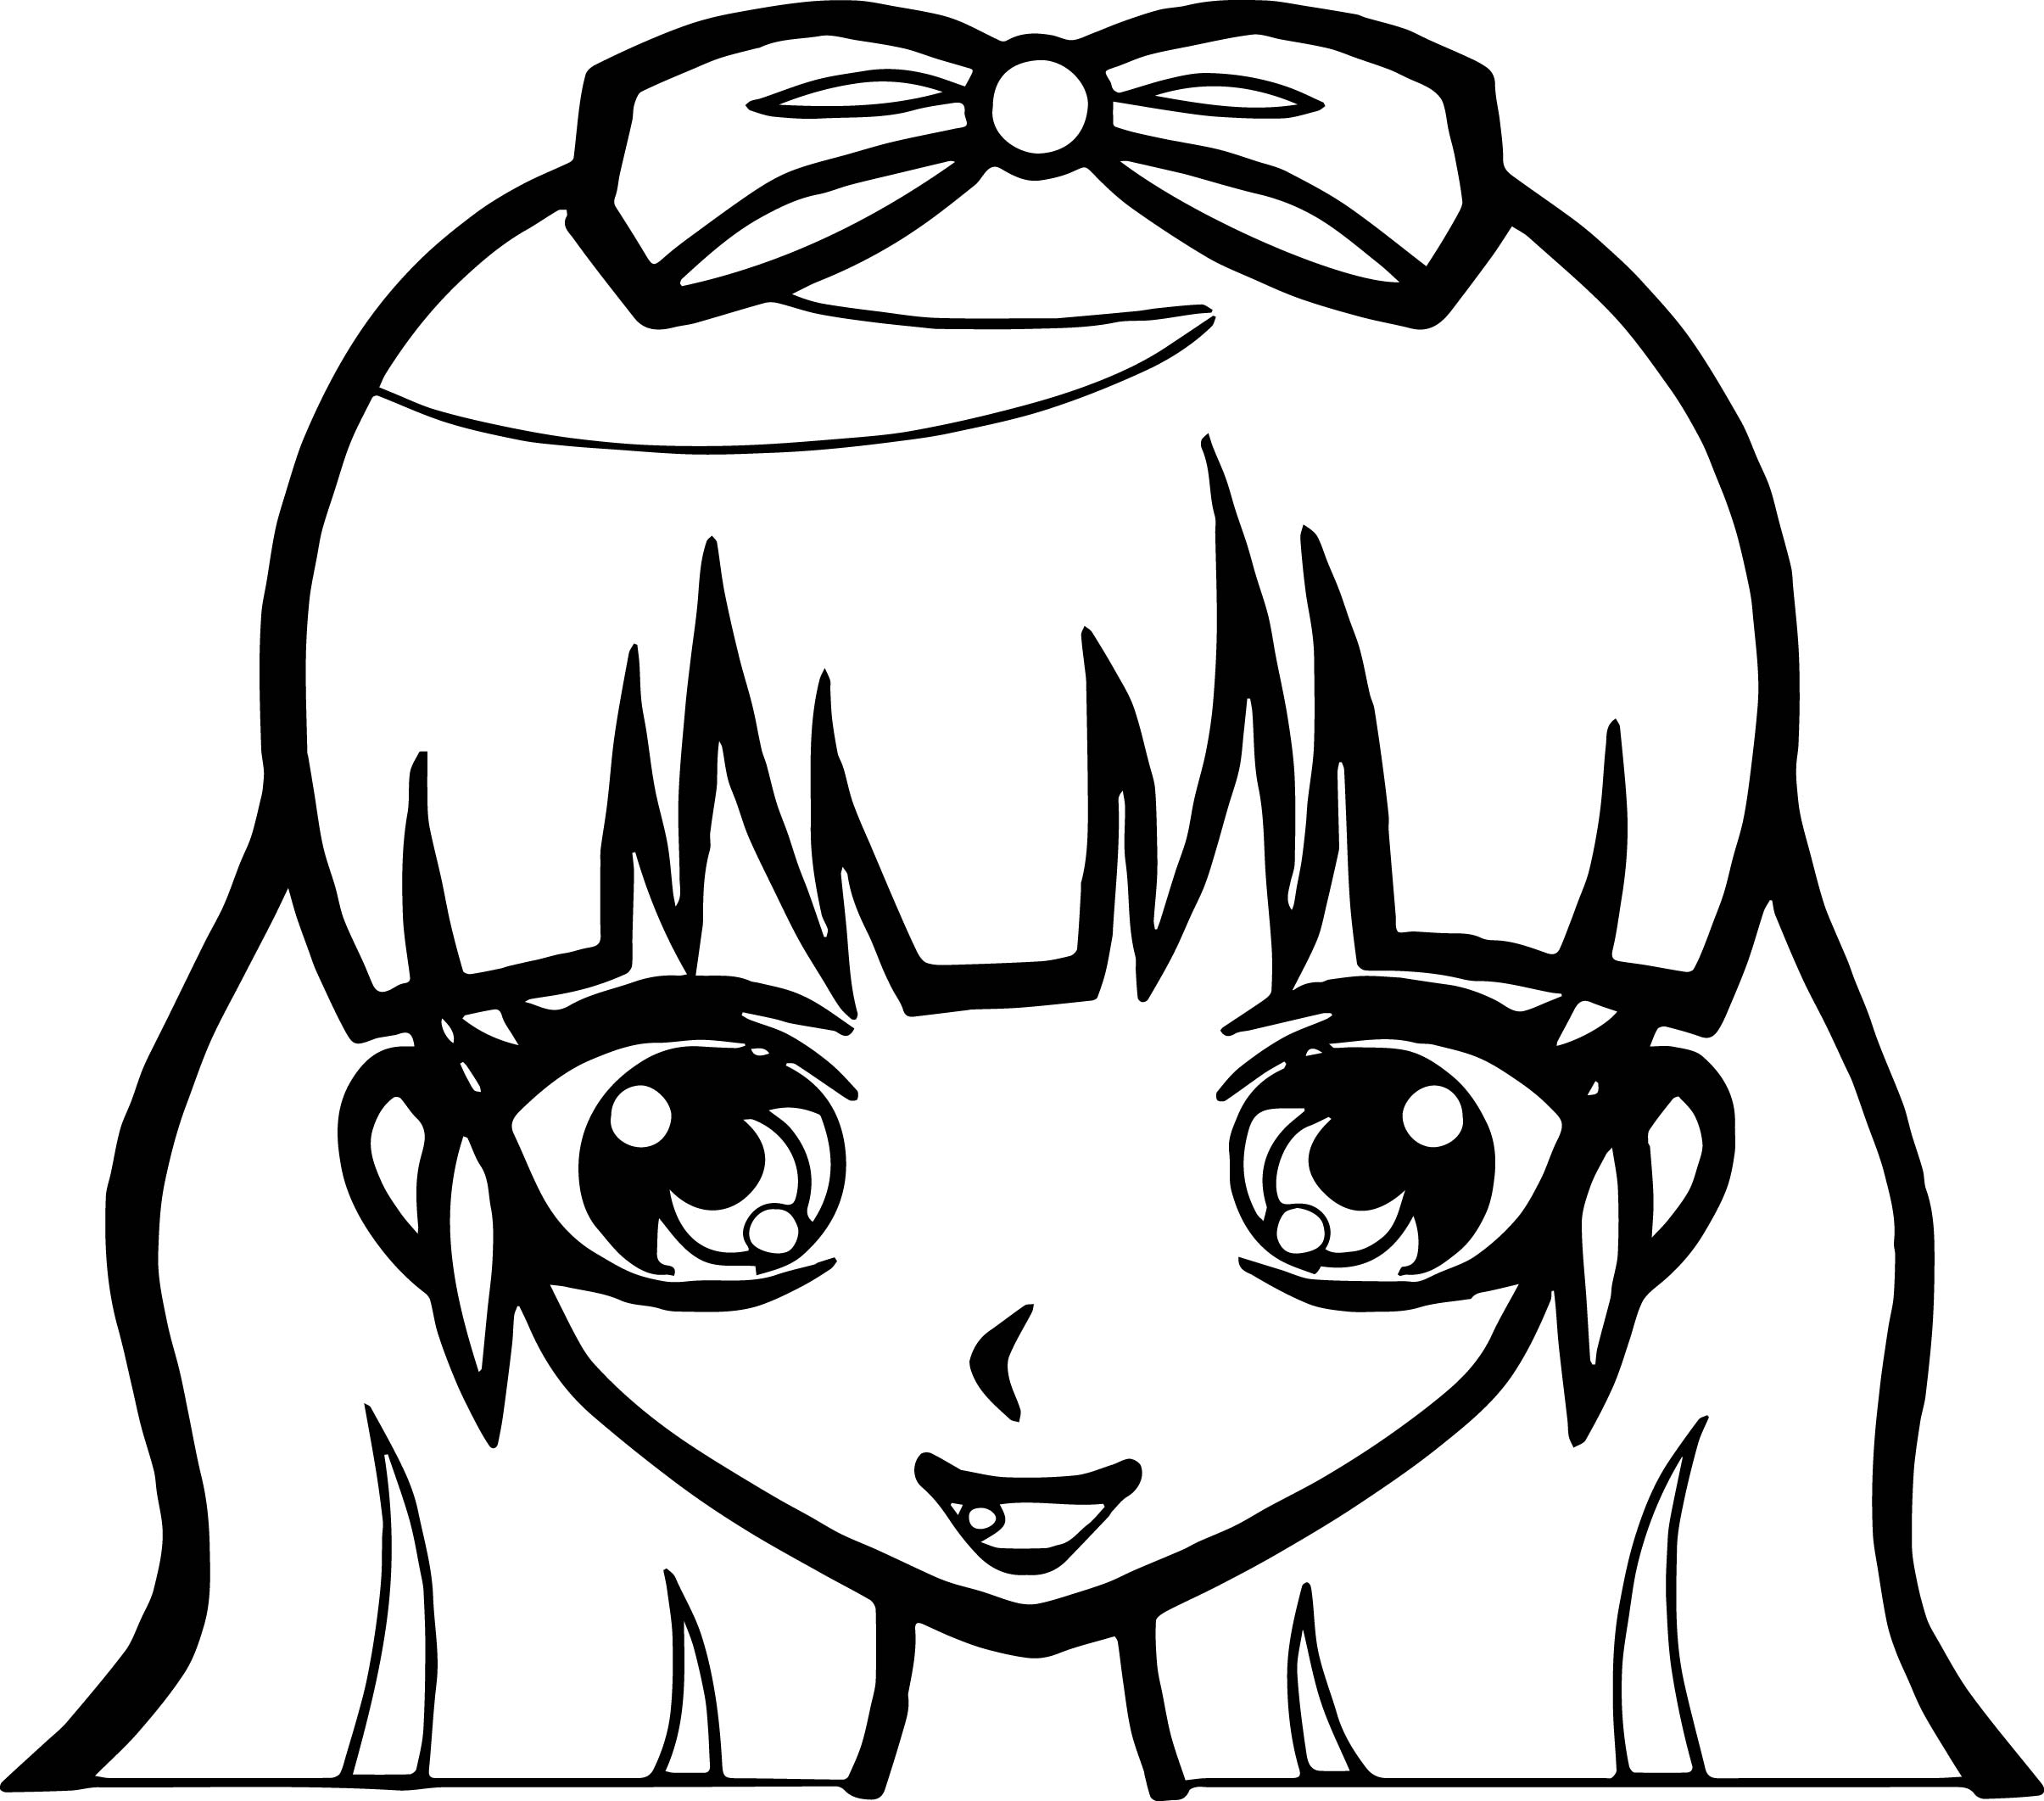 anime girl face coloring pages cute anime girl by chuloc on deviantart anime coloring face pages girl